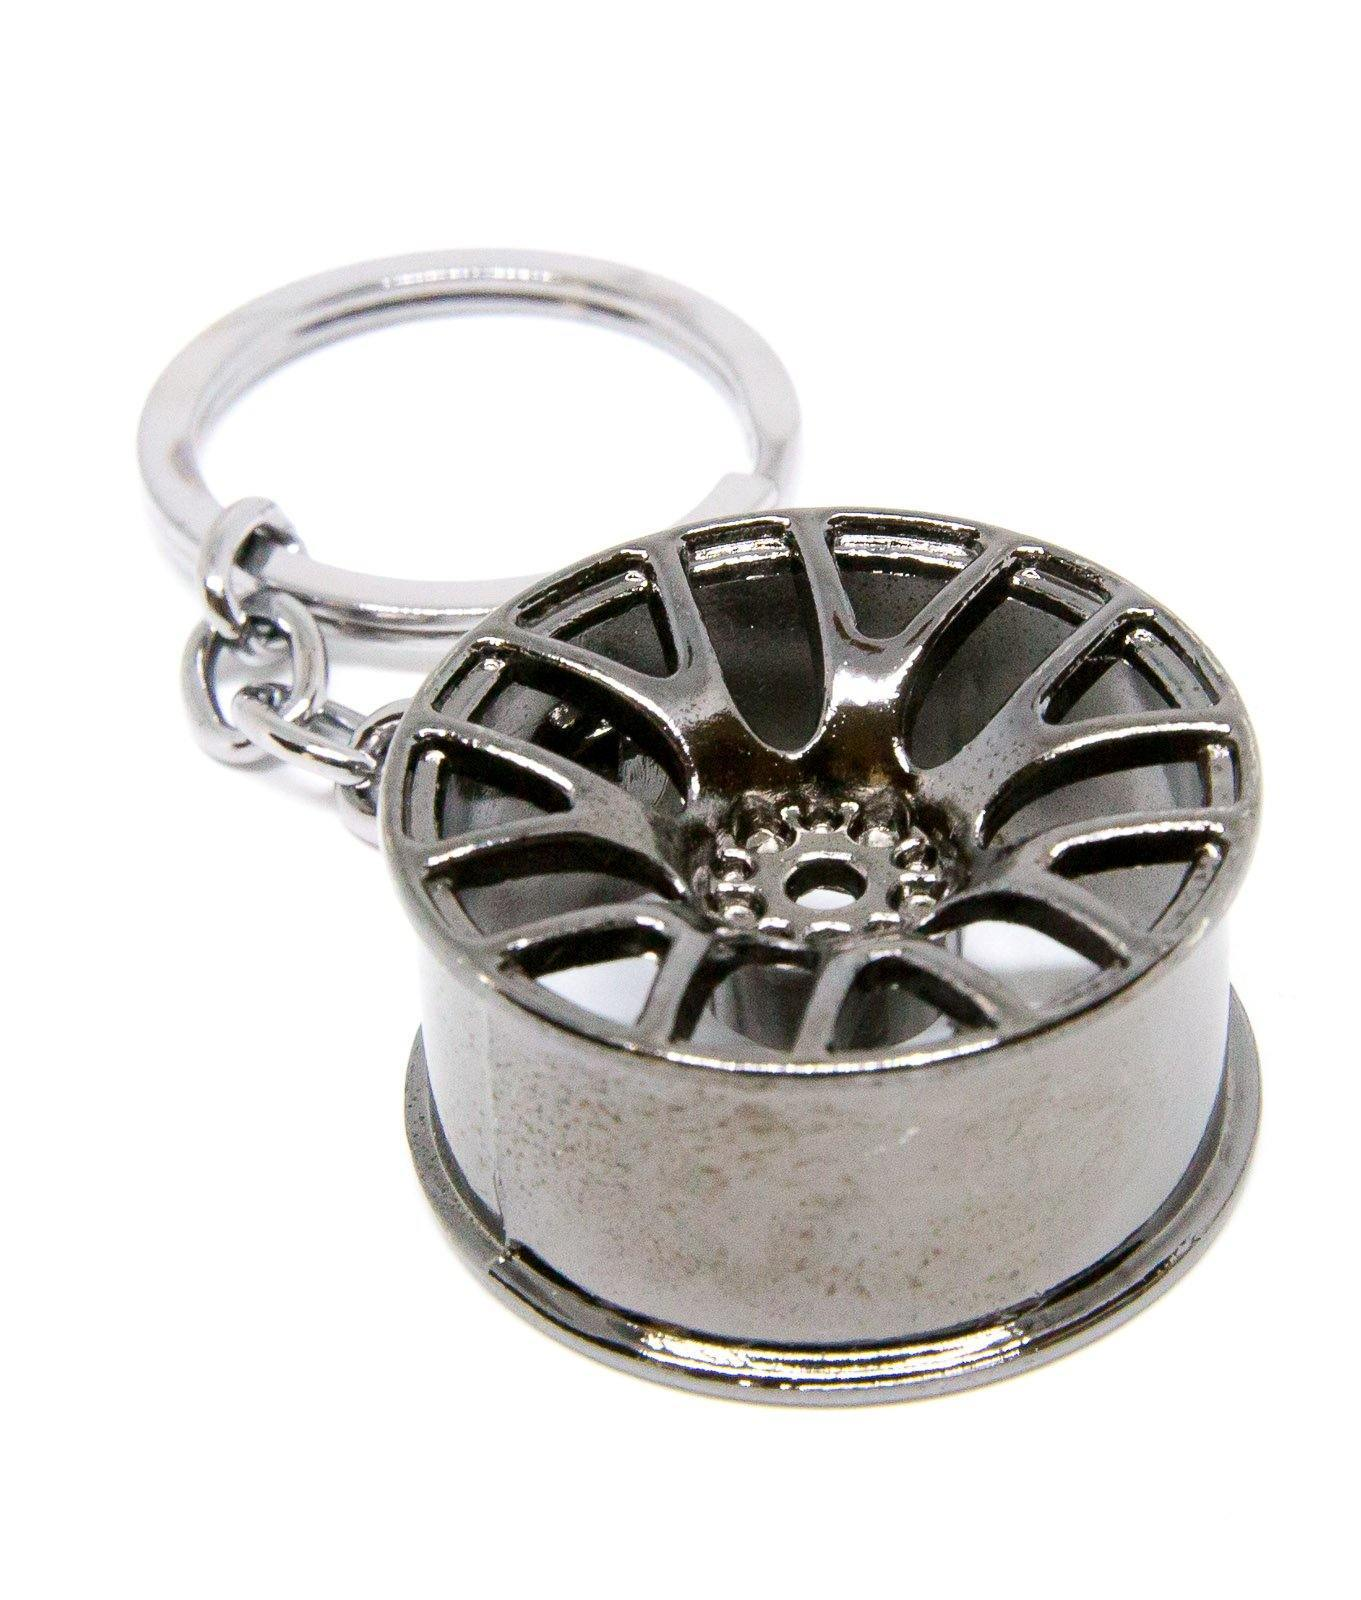 3SDM 0.01 Wheel Key Ring